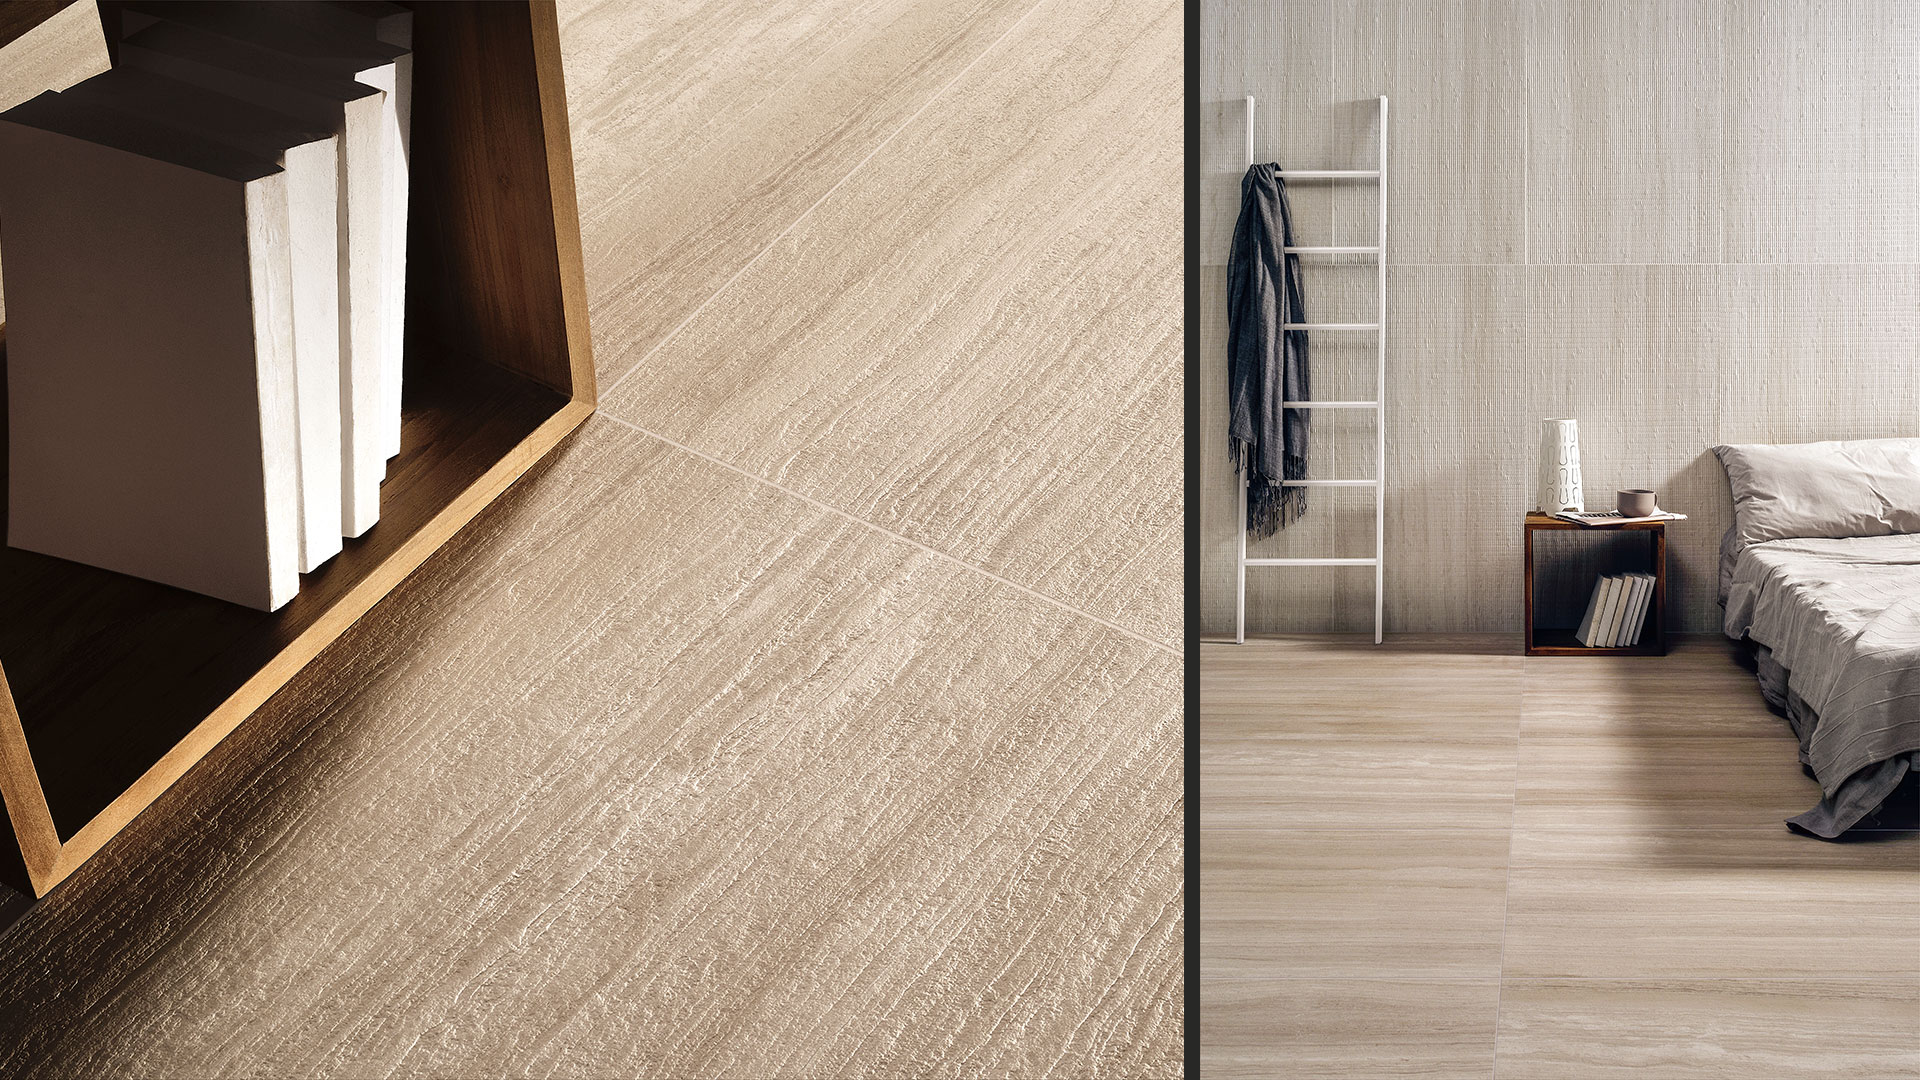 Coverings Fioranese and Coem Ceramics Tiles of Italy and porcelain